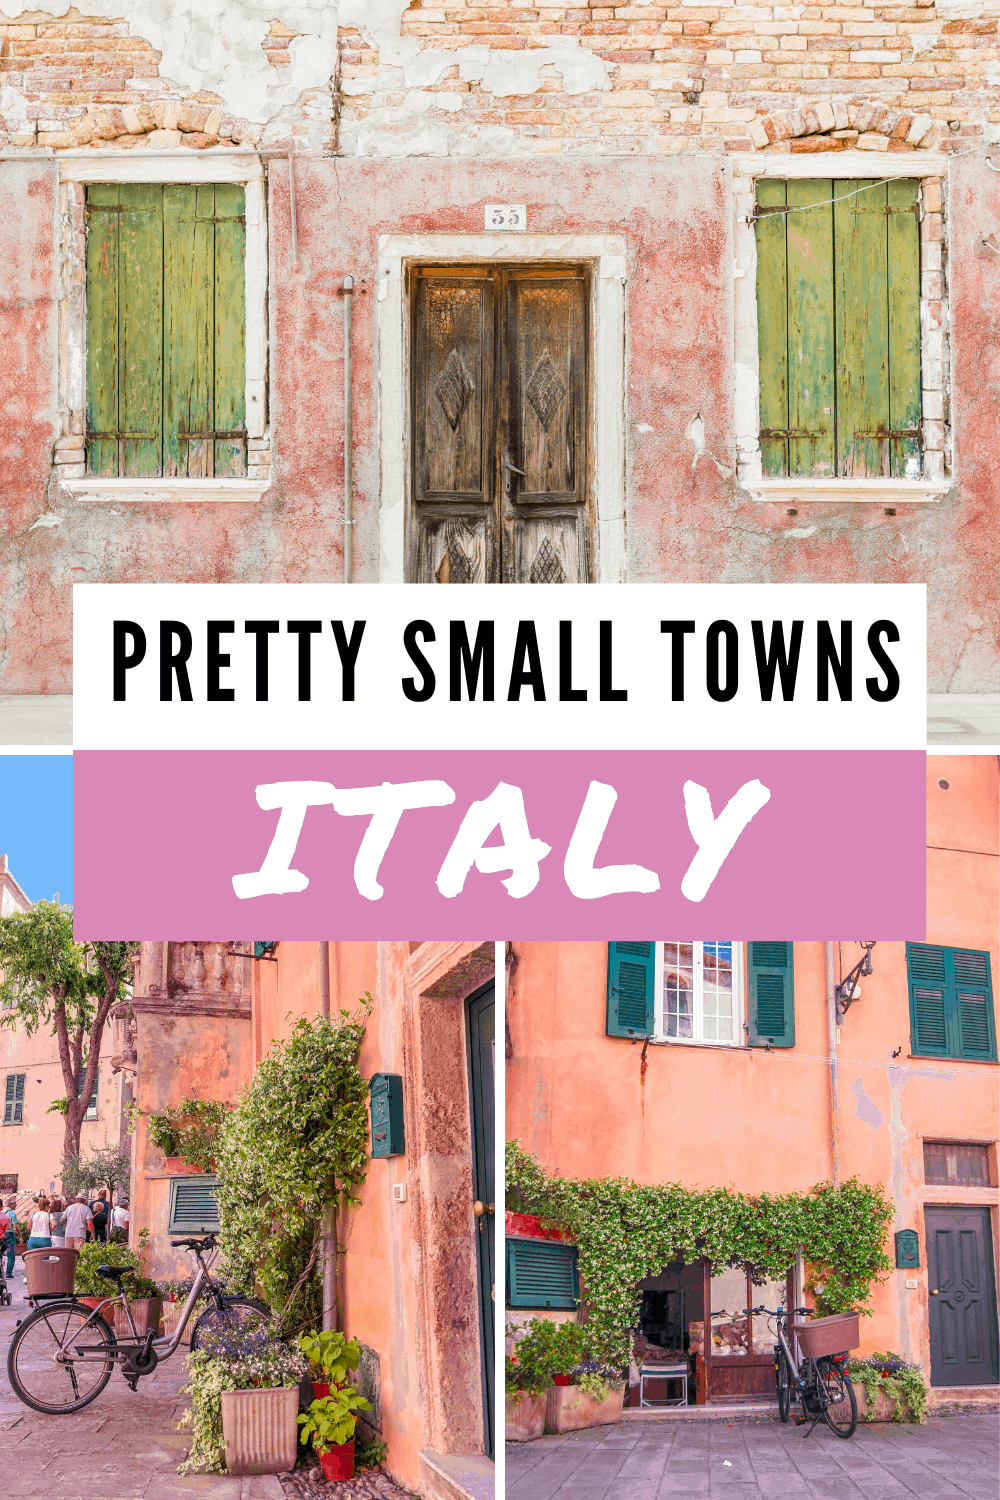 Put these beautiful places in Italy on your next travel to Italy list and enjoy an authentic Italy trip without the crowds. If Rome, Venice, or Florence are too much, choose these less known small towns in Italy for your Italy travel itinerary and live your Italy vacation to the fullest!